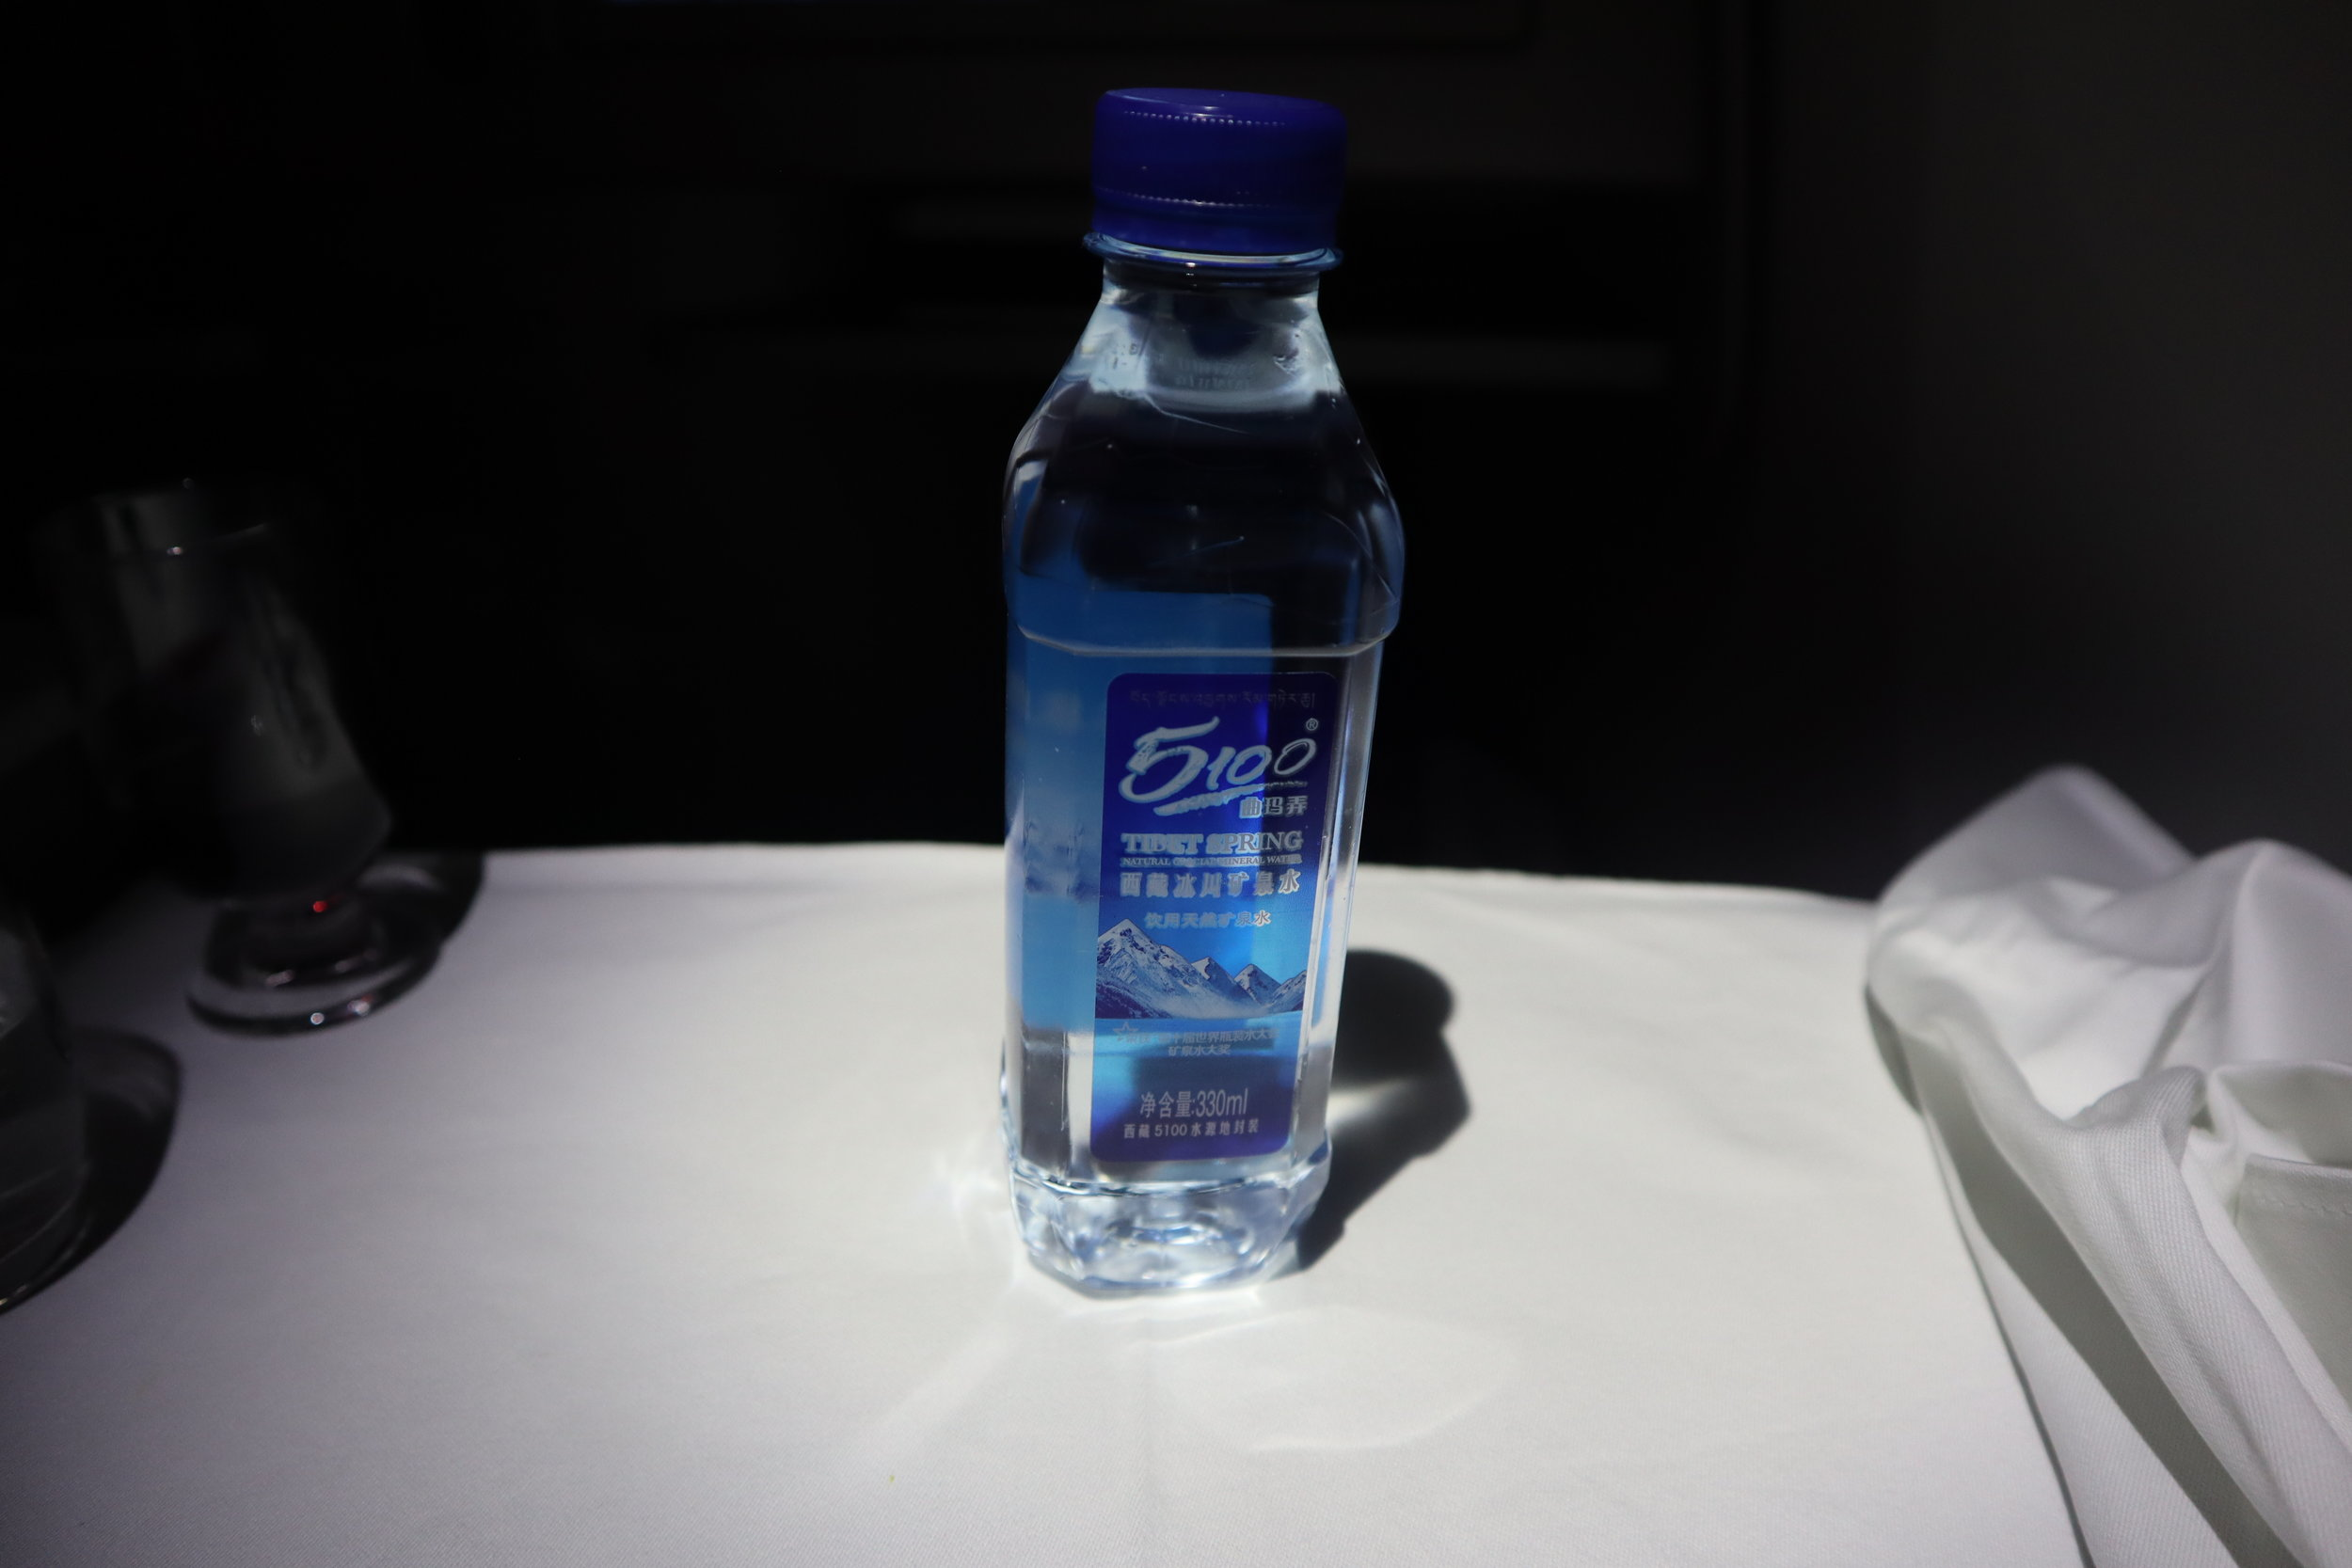 Air China business class – Bottled water